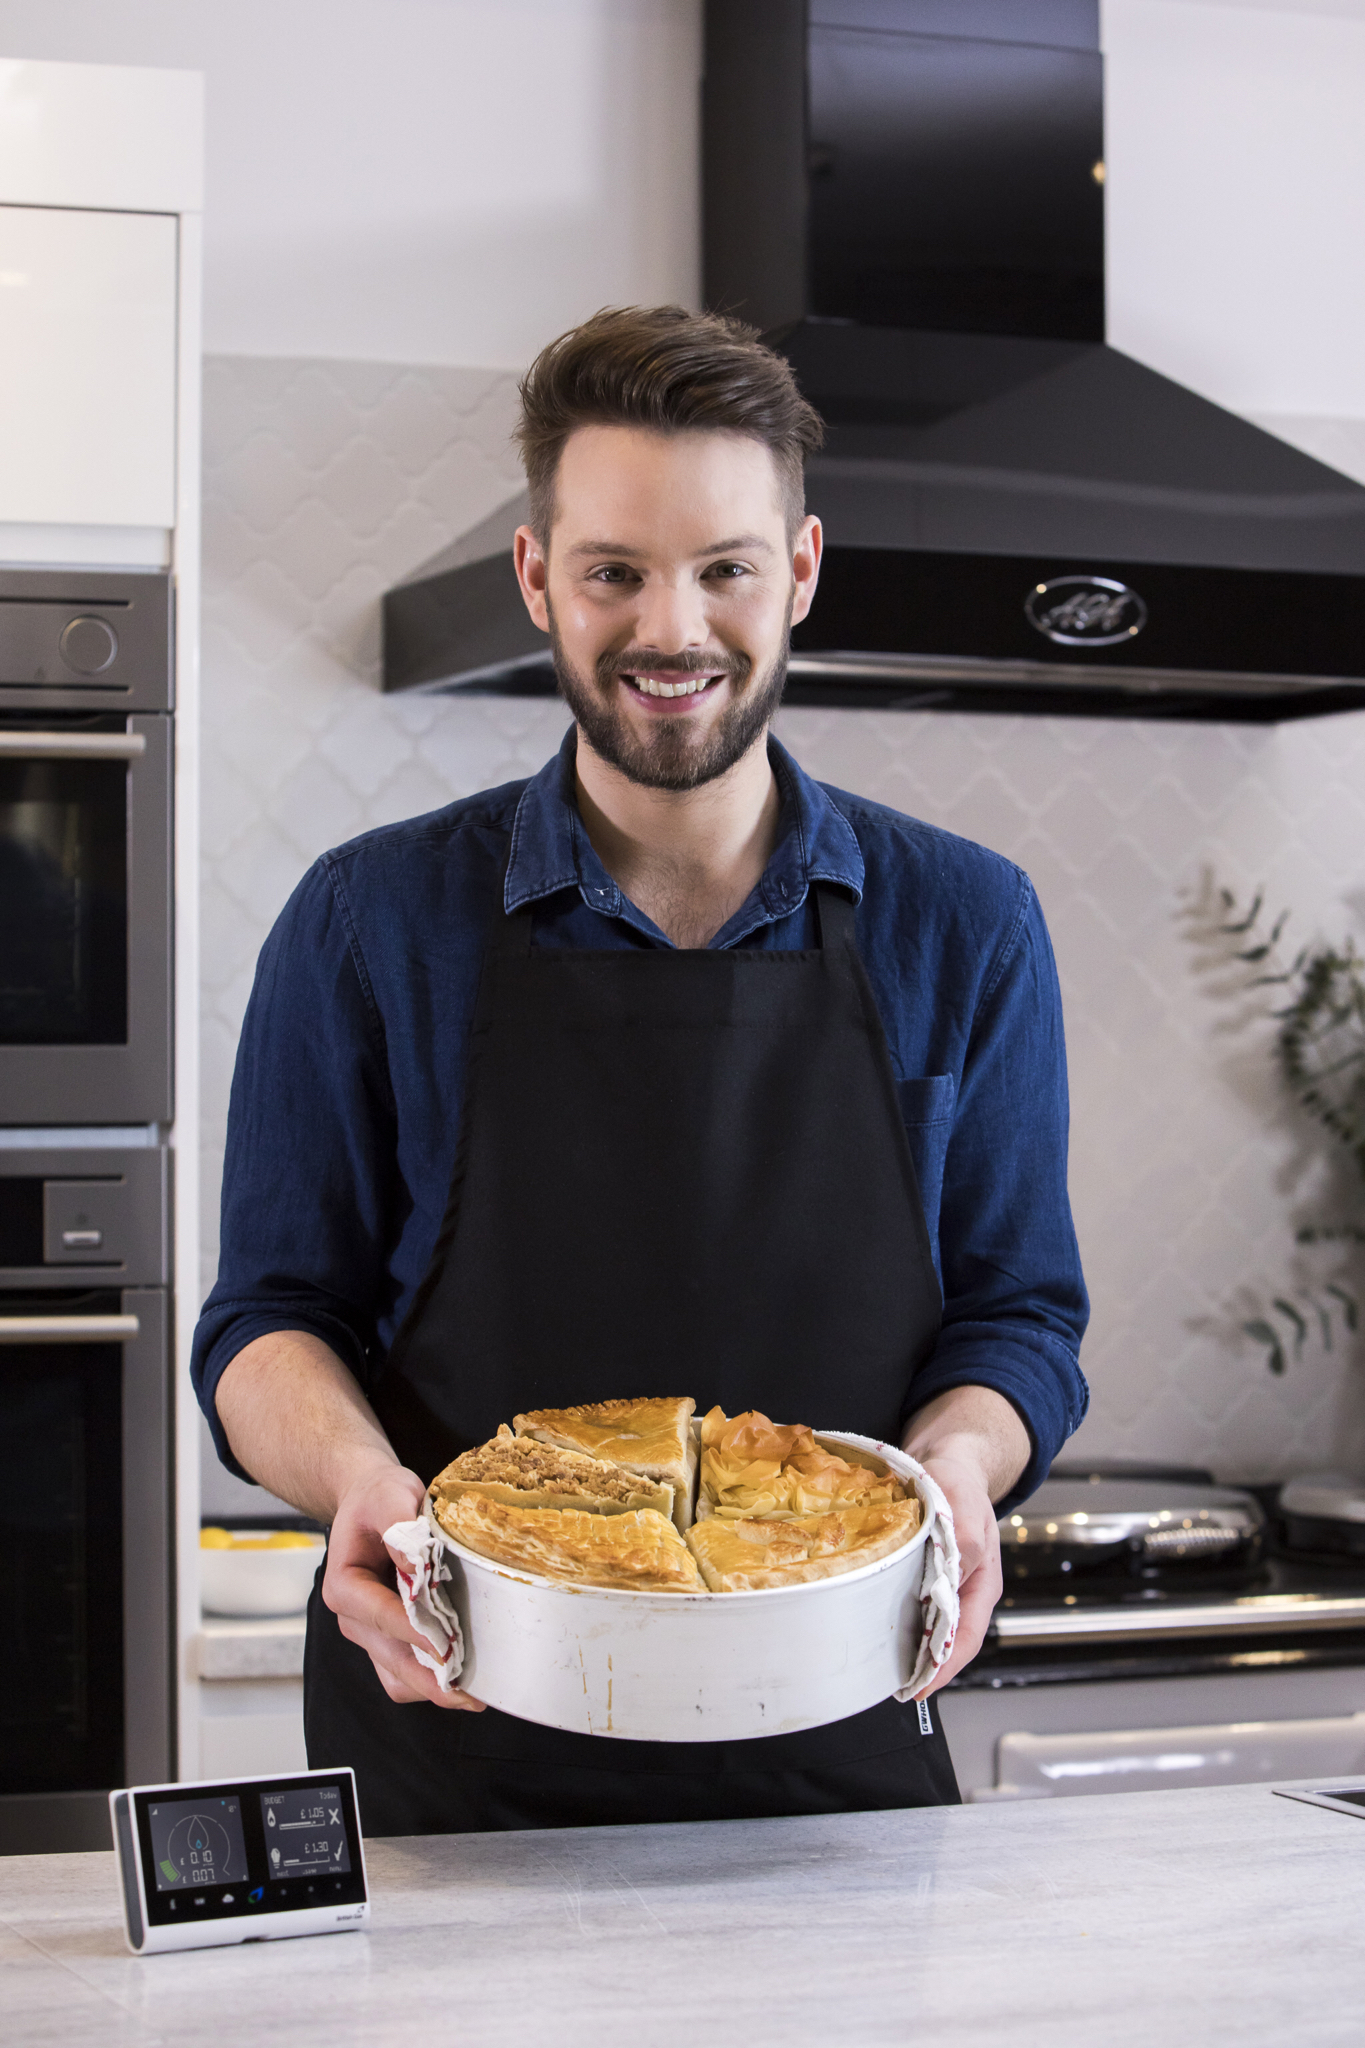 Uncategorized British Gas Kitchen Appliance Cover gerrys kitchen scottish gas chef john whaite show how smart with british pie week upon us baking guru has joined forces to create the nations smartest pie